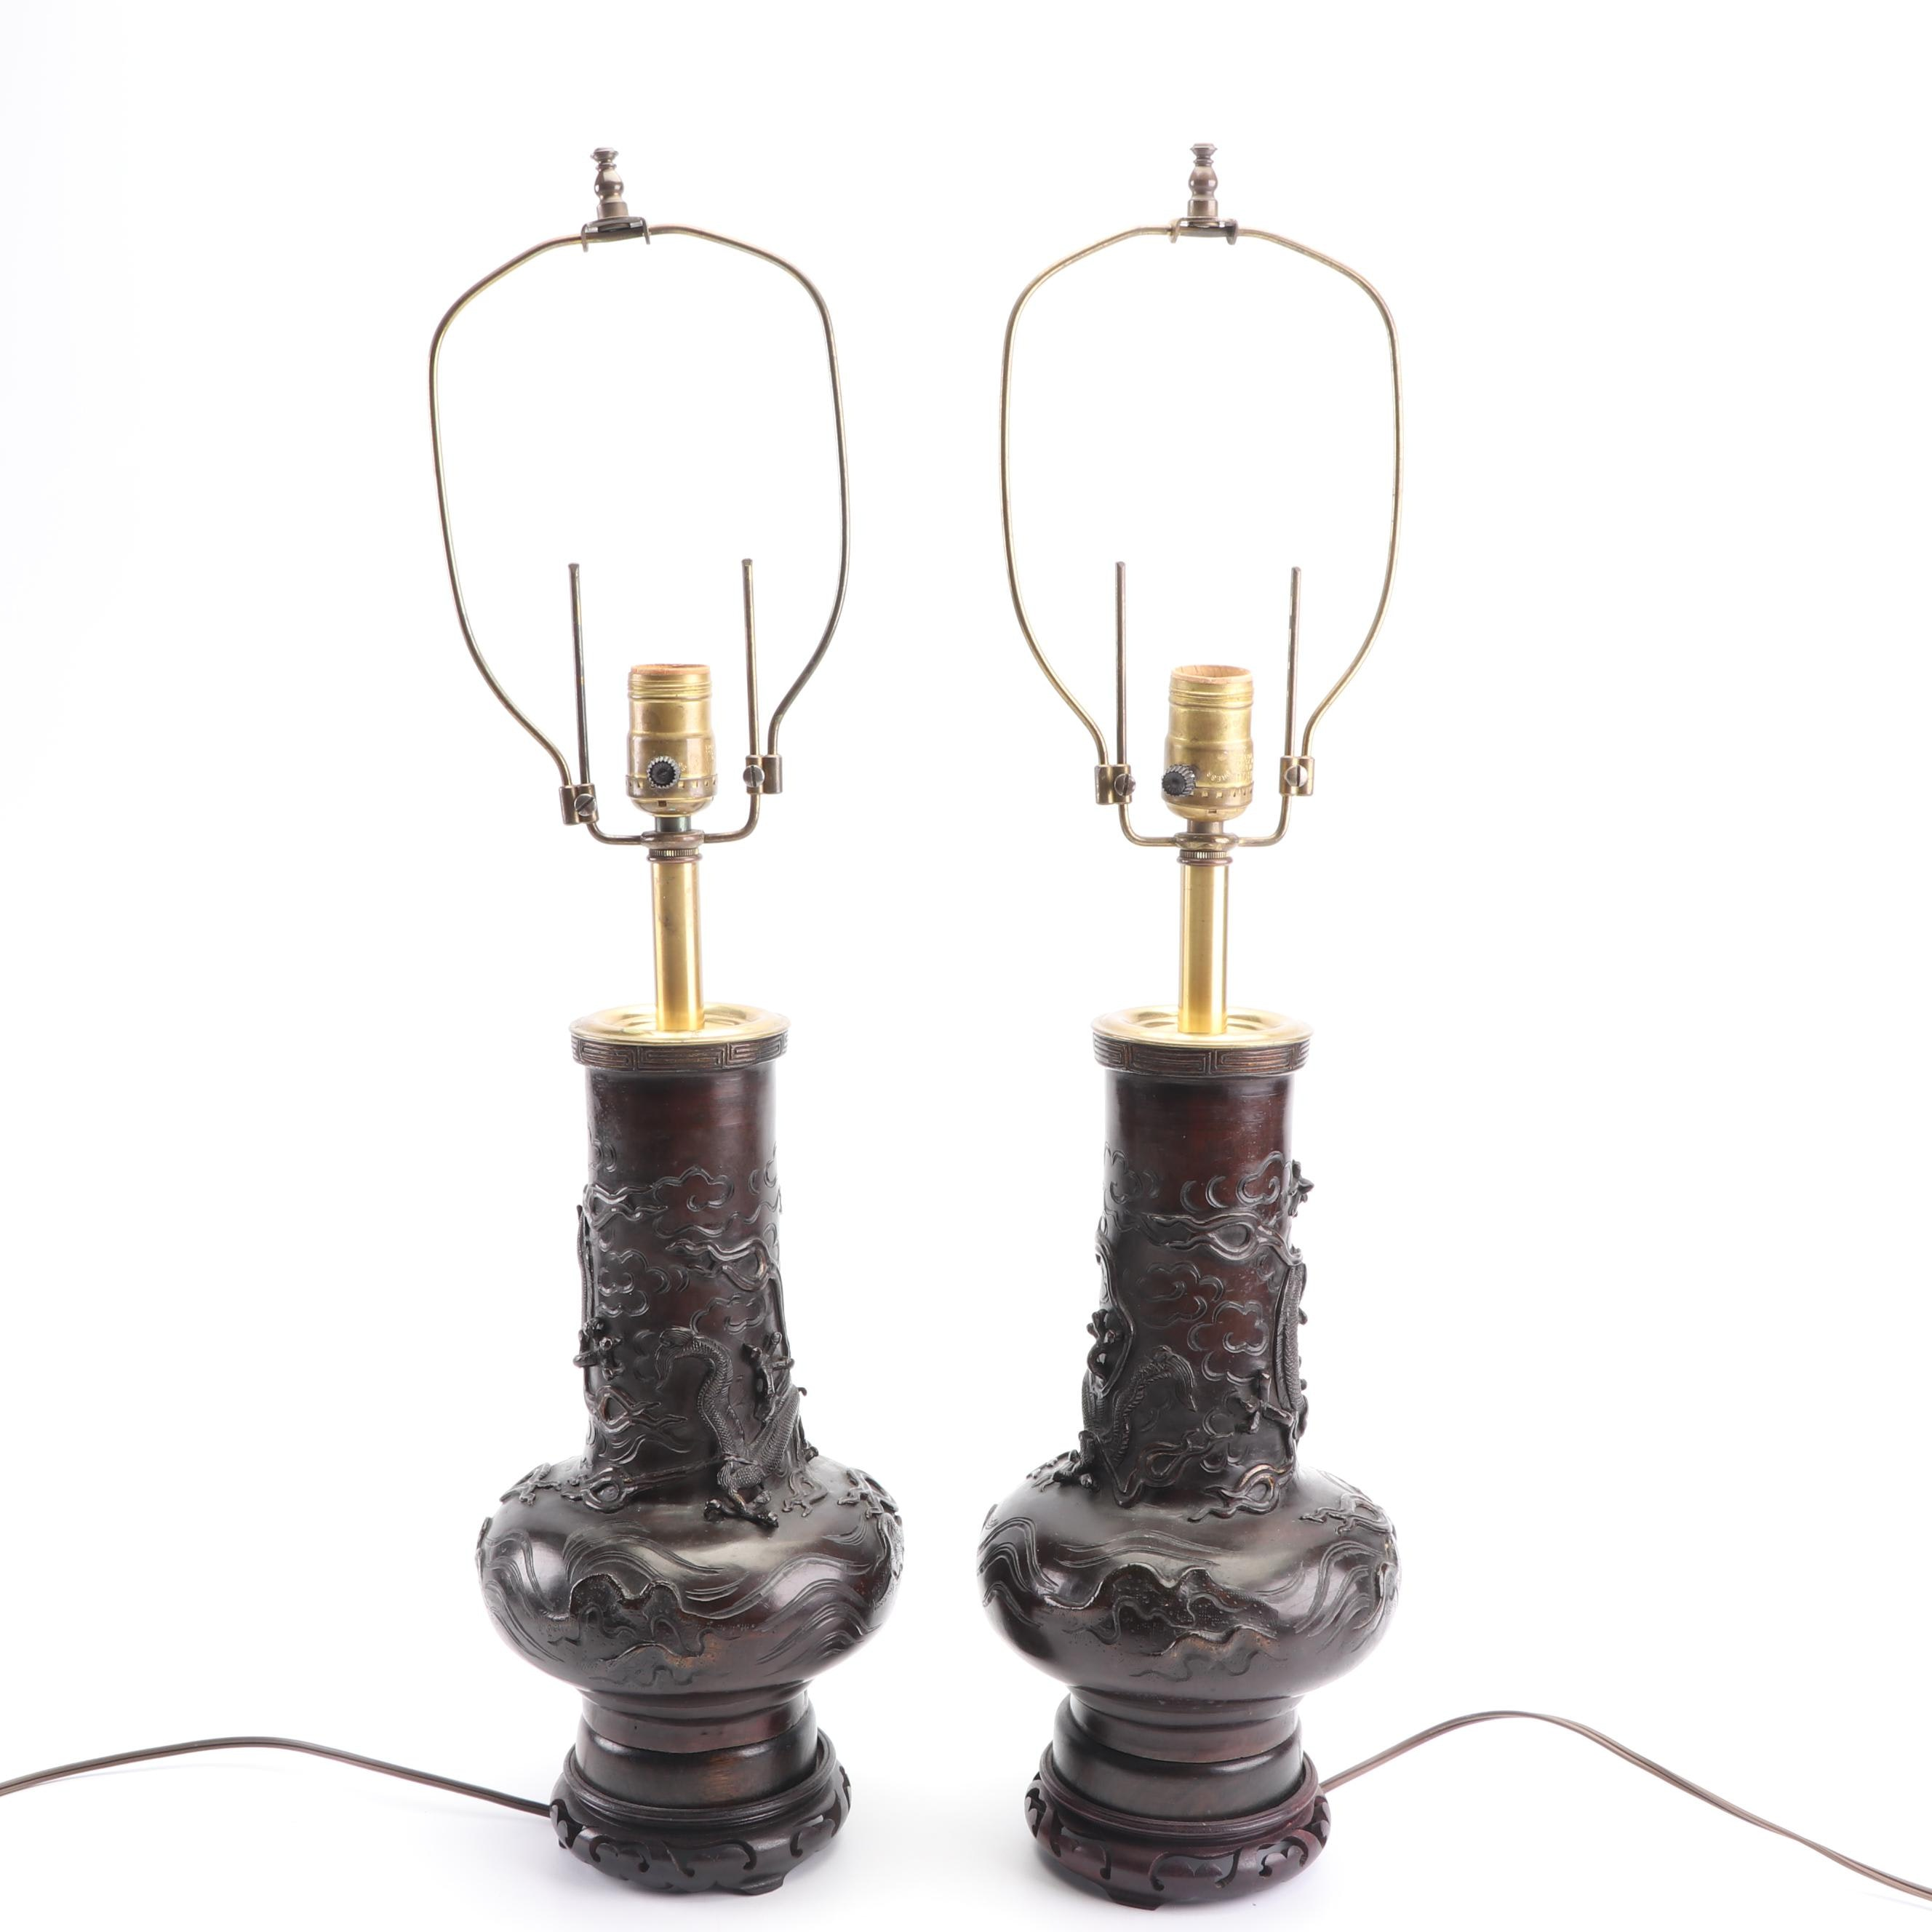 Japanese Carved Wood Table Lamps, Mid-20th Century